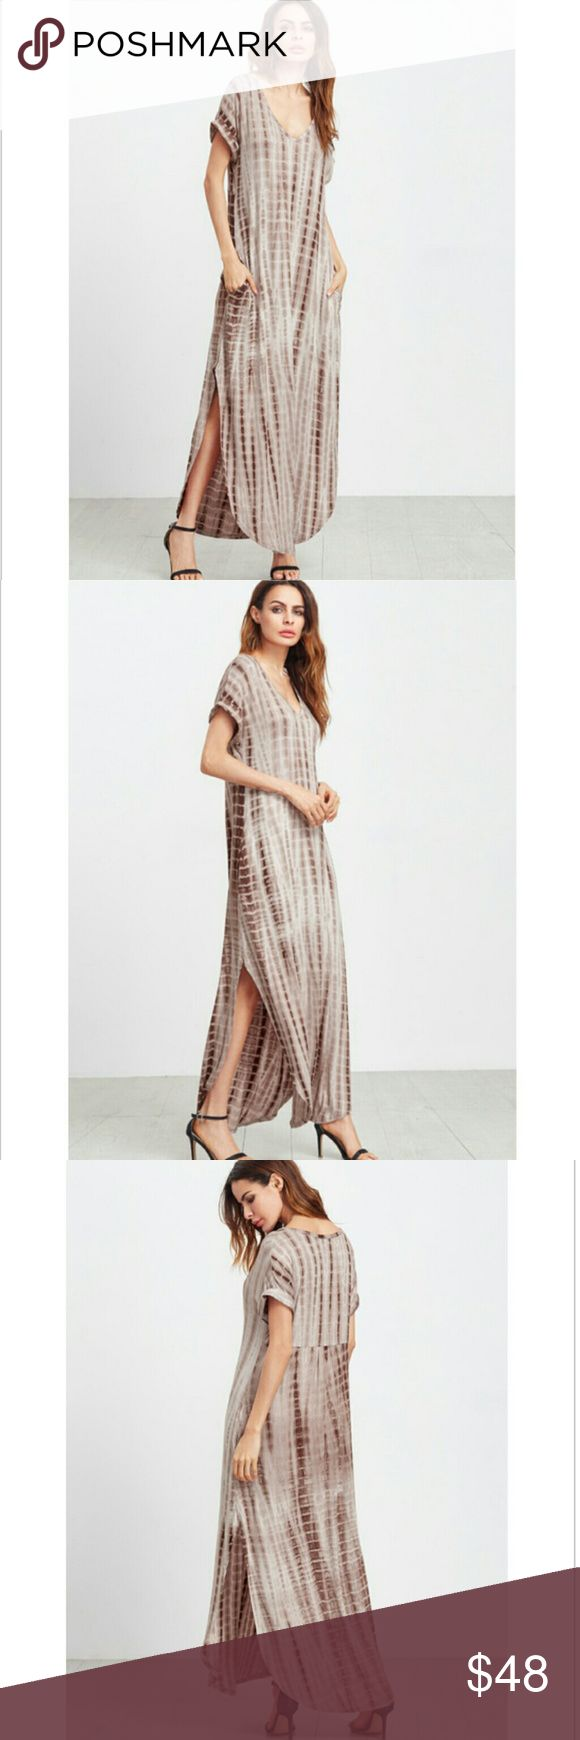 NOW AVAILABLE!! COFFEE TIE DYE MAXI COFFEE TIE DYE PRINT SPLIT CURVED HEM MAXI DRESS WITH POCKETS!   -MEASUREMENTS/MATERIAL CONTENT/SEE LAST IMAGE -BUNDLE DISCOUNTS AVAILABLE/JUST ASK Dresses